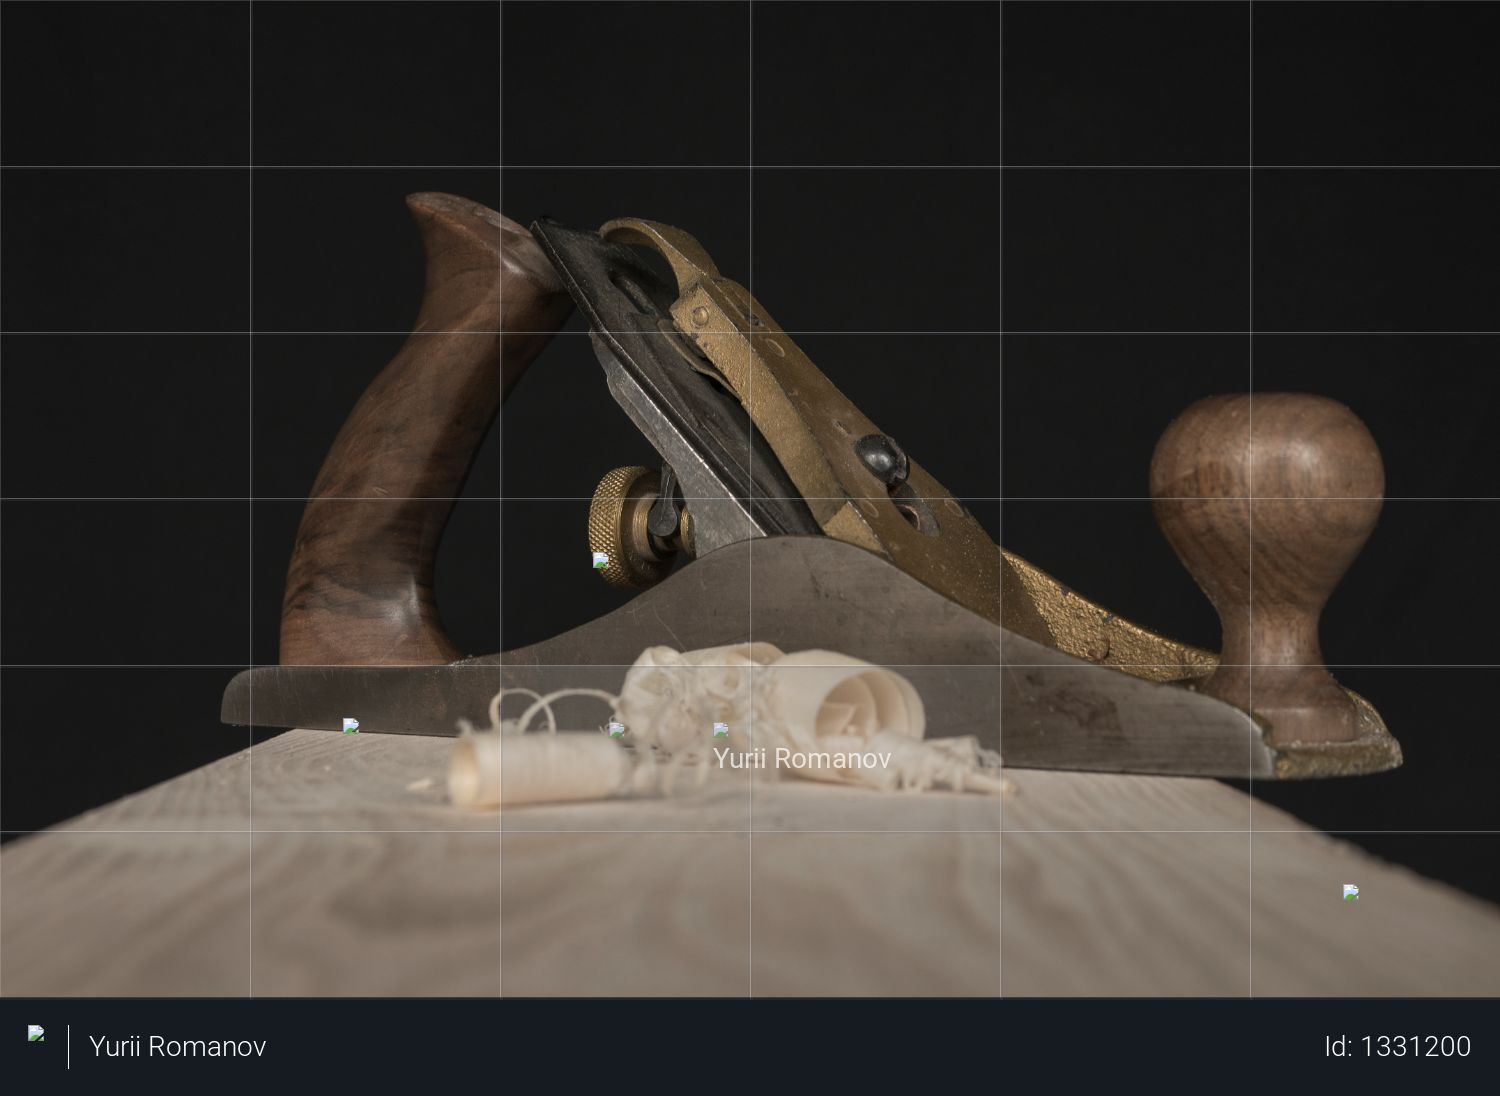 Woodworking hand plane and shavings on a black background Photo